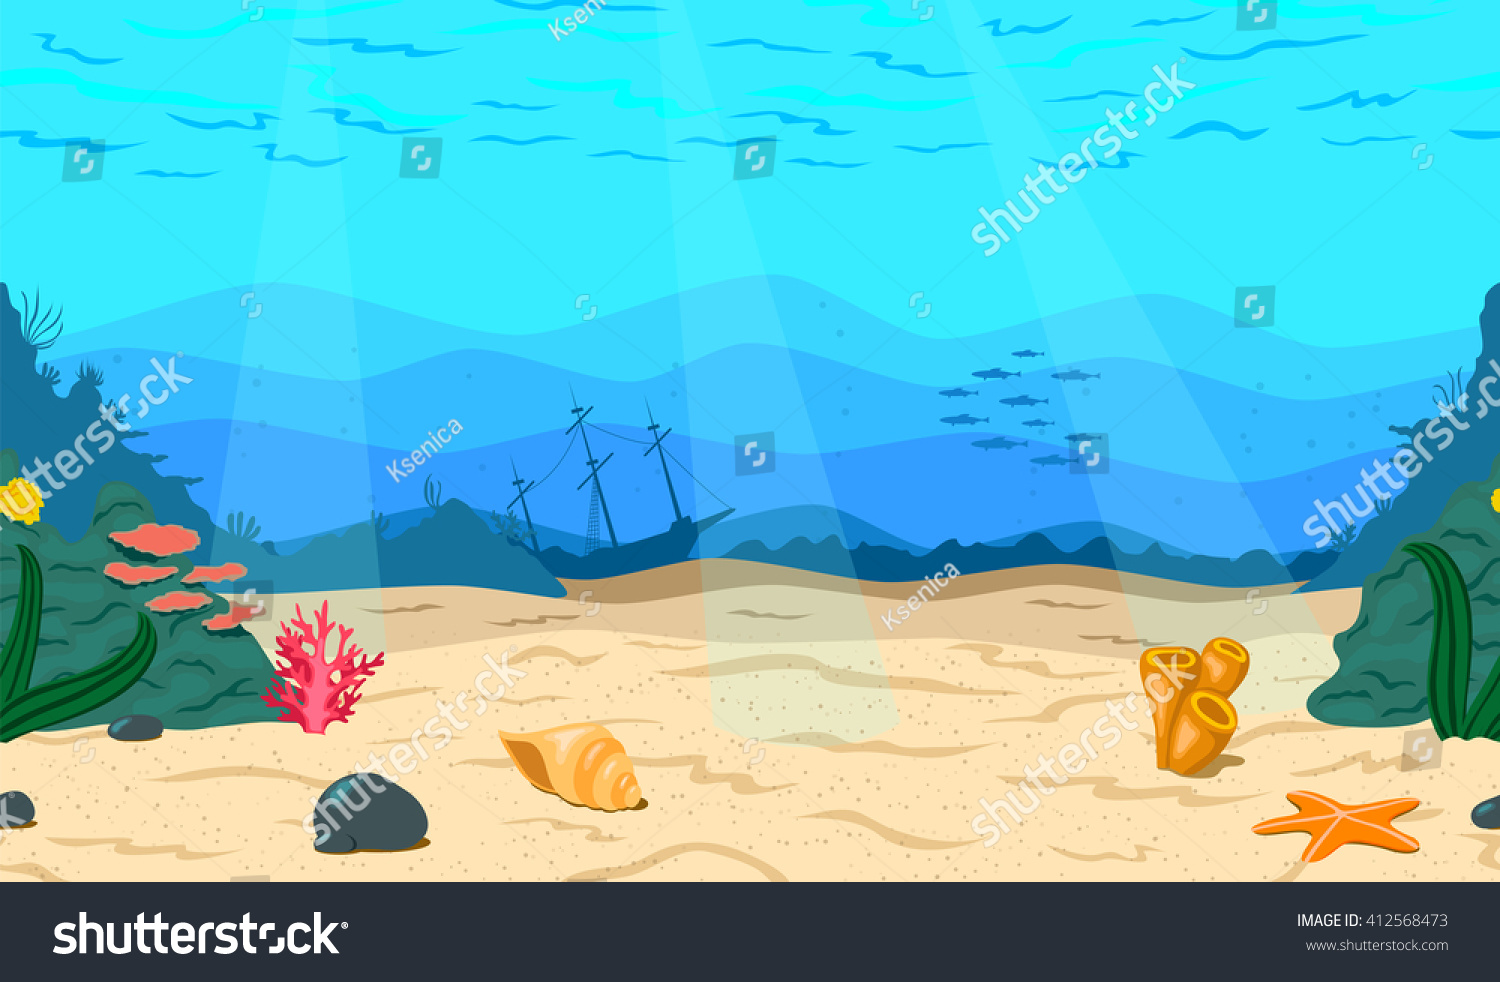 sea bed beach vector - photo #5